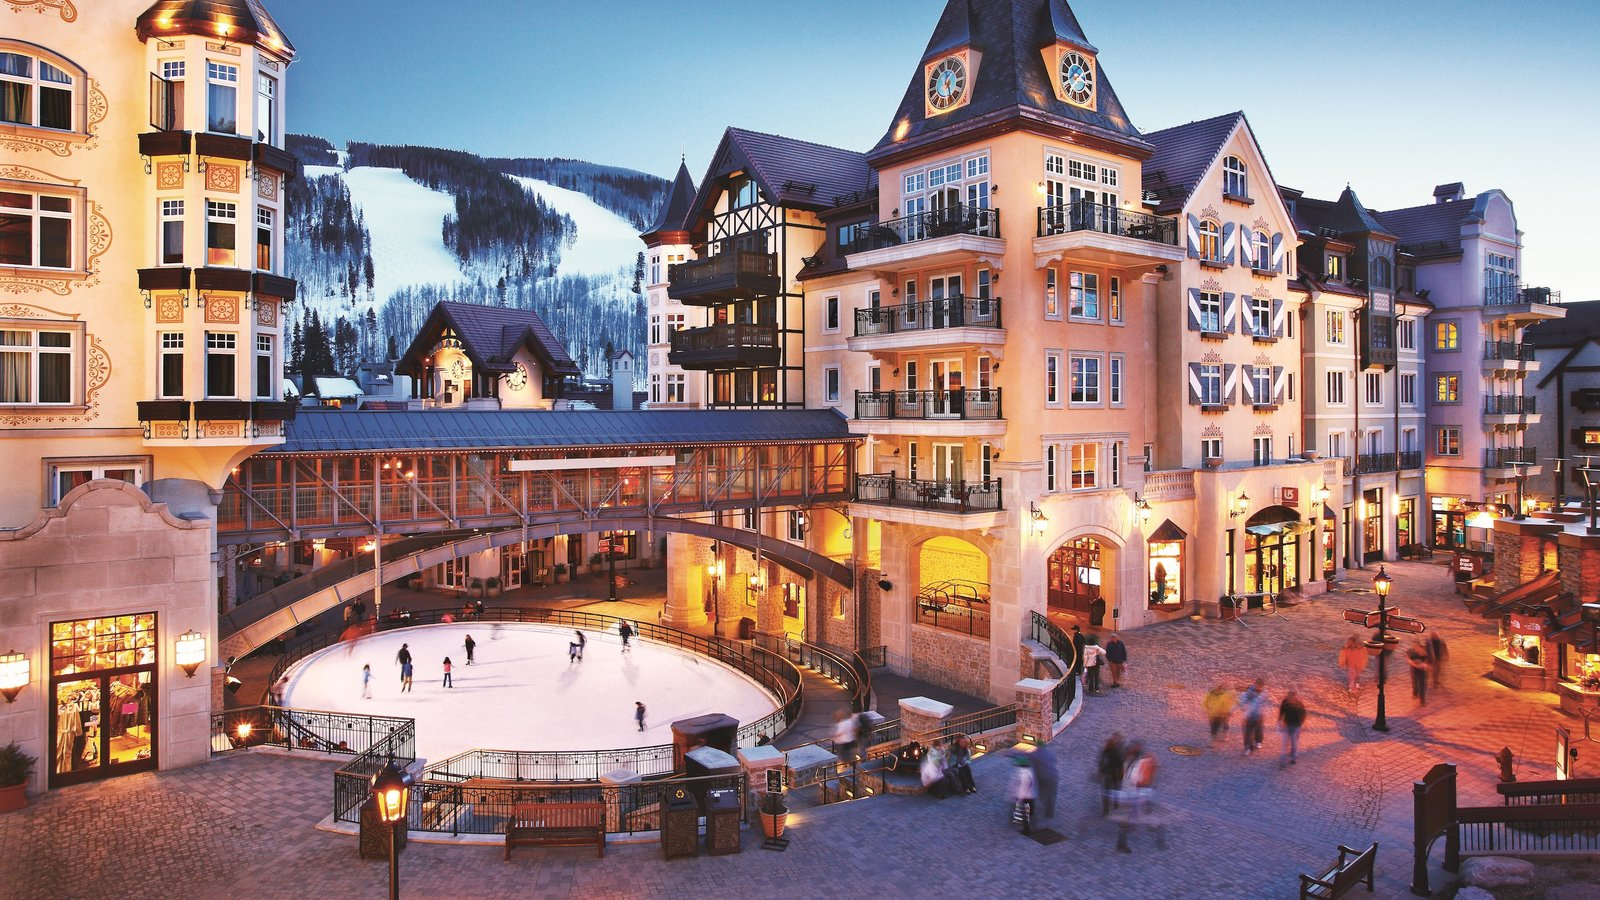 Vail showing a square or plaza a luxury hotel or resort and ice skating